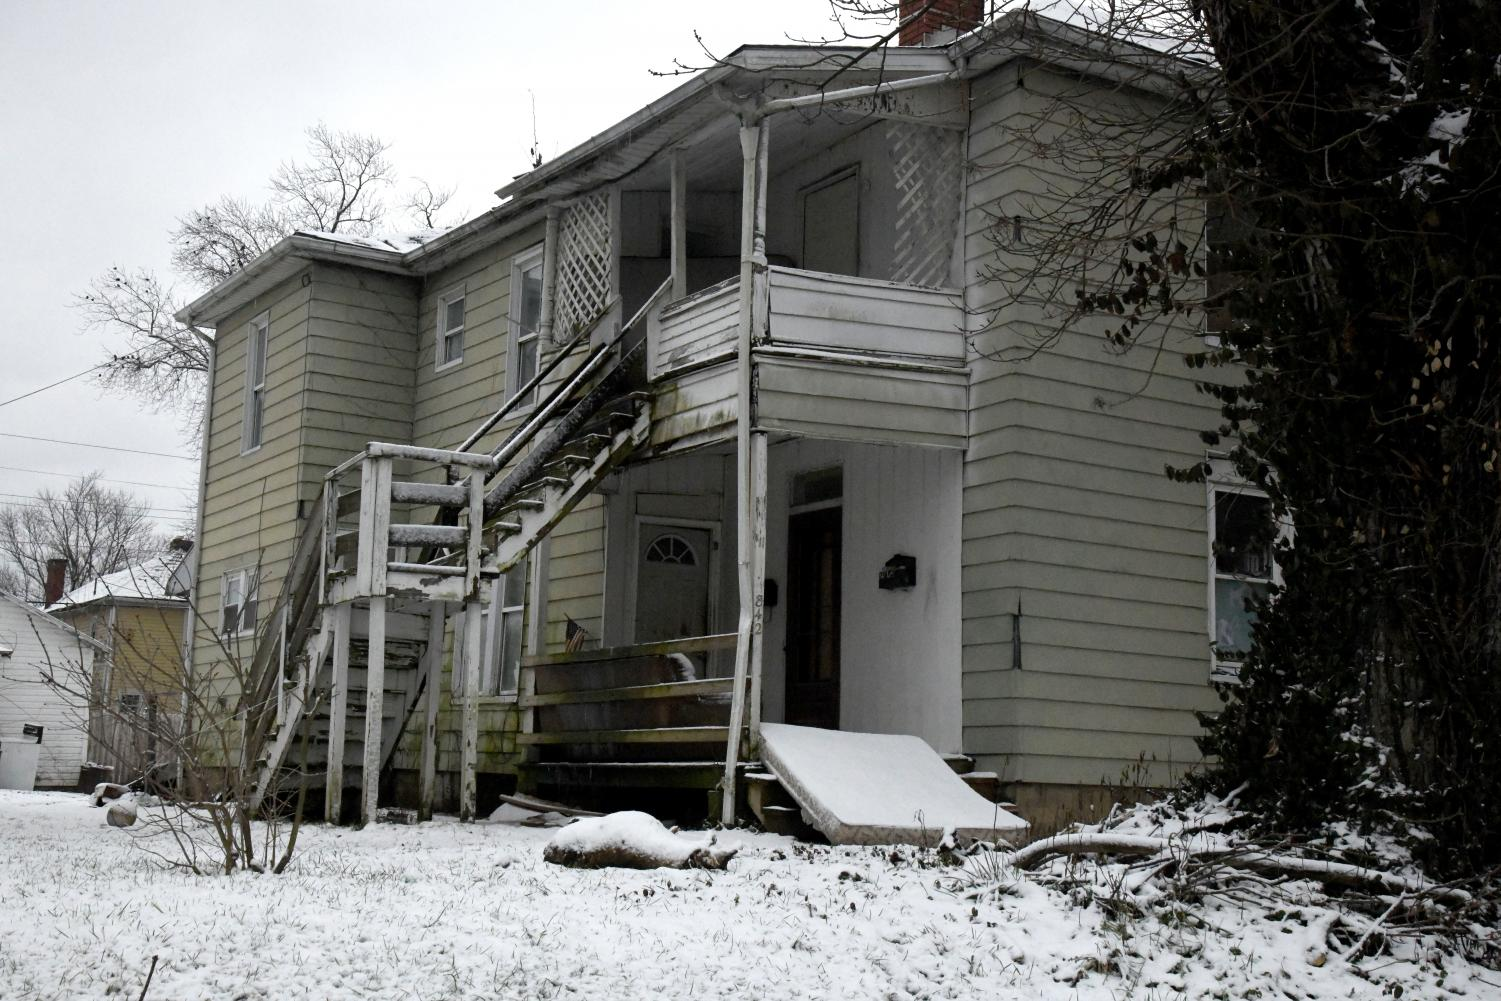 The house at 842 Dryden Rd. requires the assistance of police and fire resources for frequent disturbances.